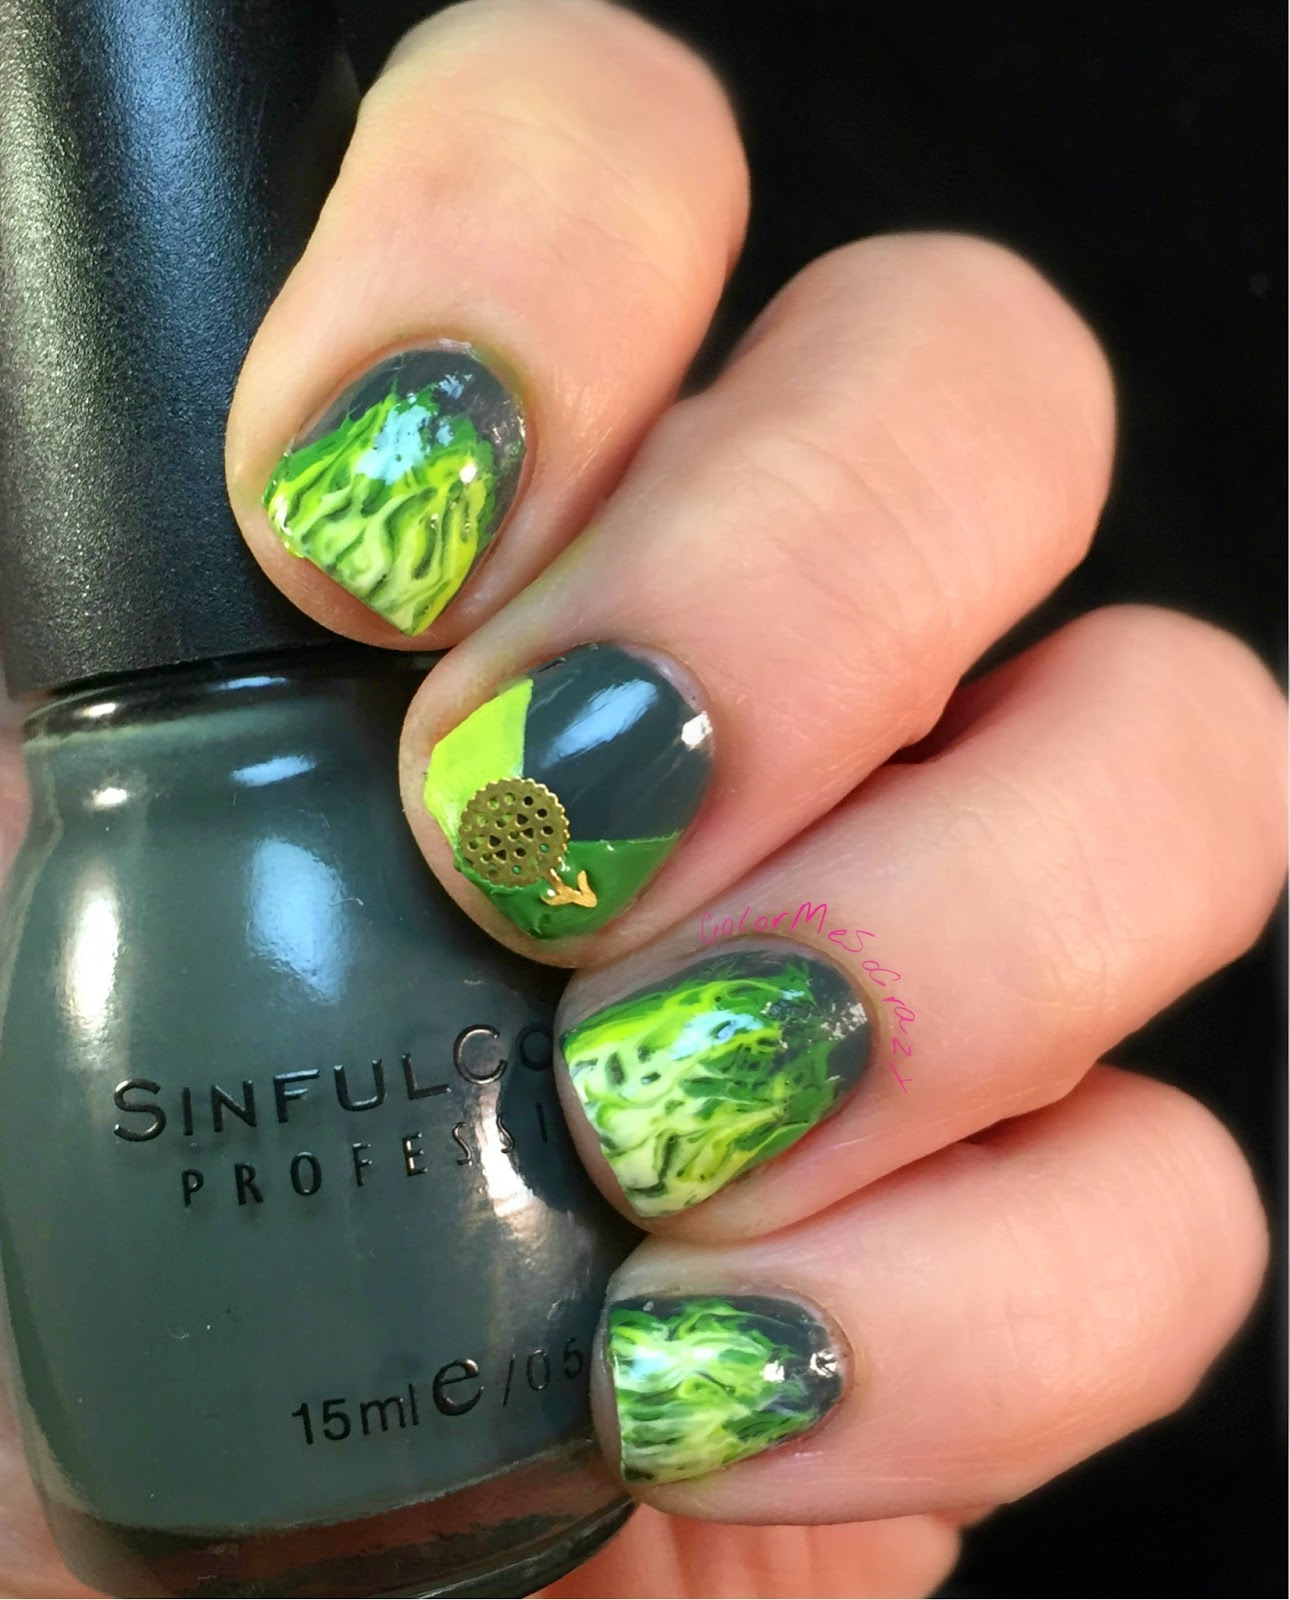 52 Week Challenge presents Fire with 3 Shades of Green, nyc, new york color, sinful colors, sally hansen